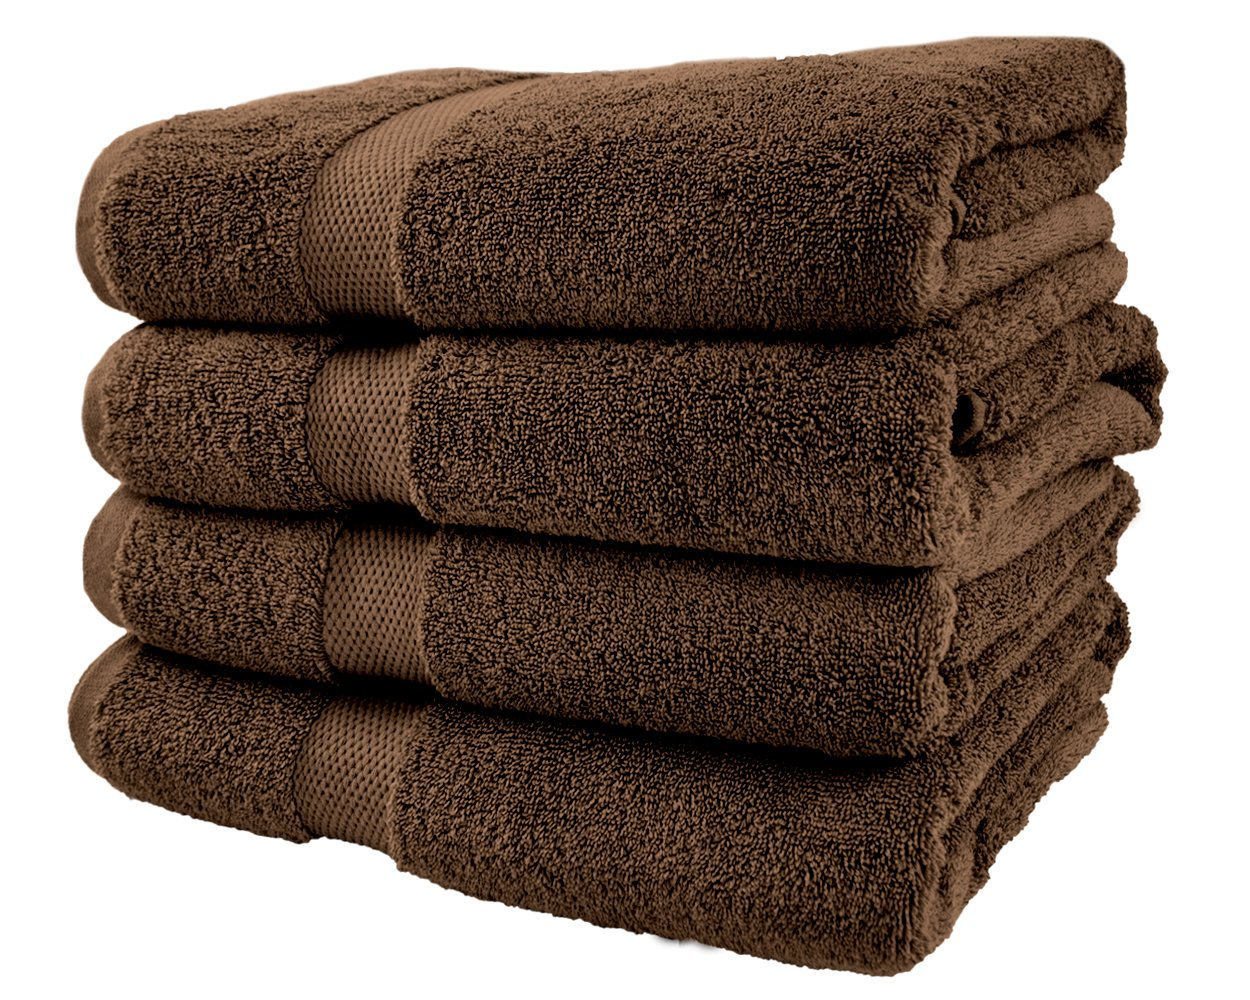 Cotton & Calm Exquisitely Plush and Soft Bath Towel Set, Chocolate/Dark Brown - 4 Large Bath Towels Set - Spa Resort and Hotel Quality, Super Absorbent 100% Cotton Luxury Bathroom Towels